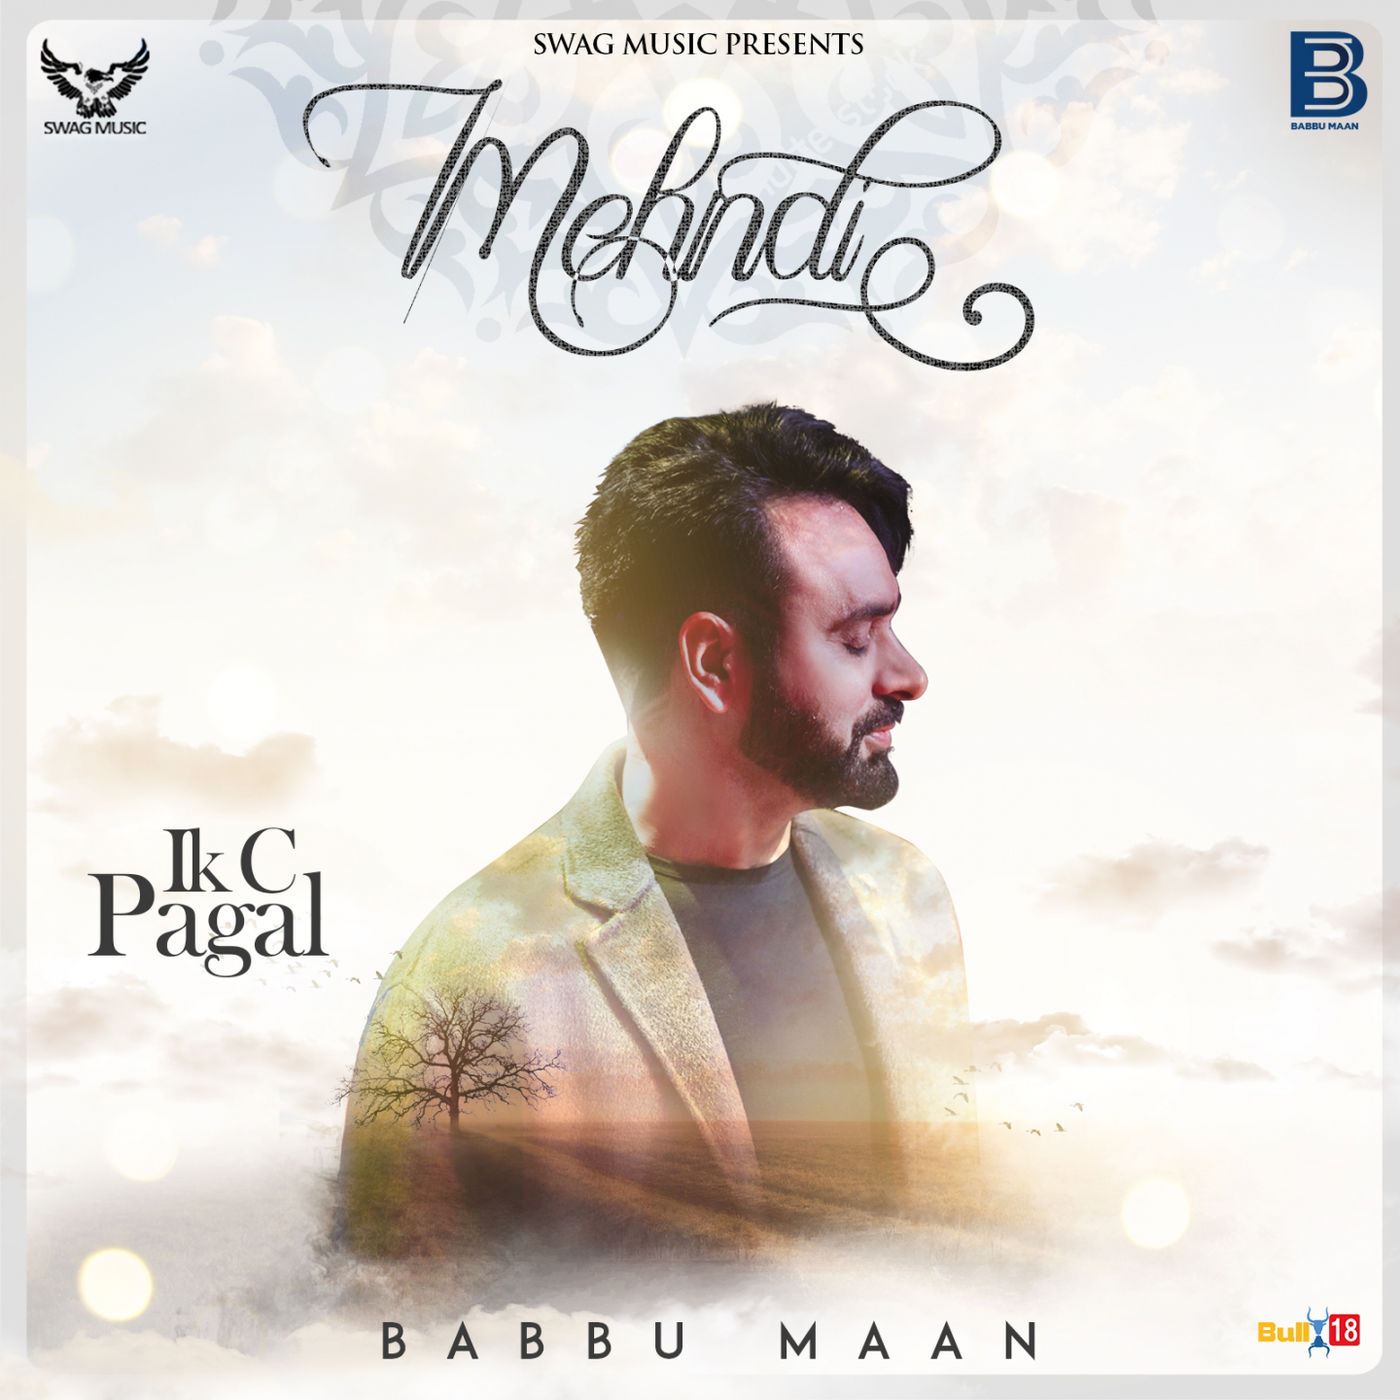 free download Mehndi (Ik C Pagal) Babbu Maan full mp3 songs